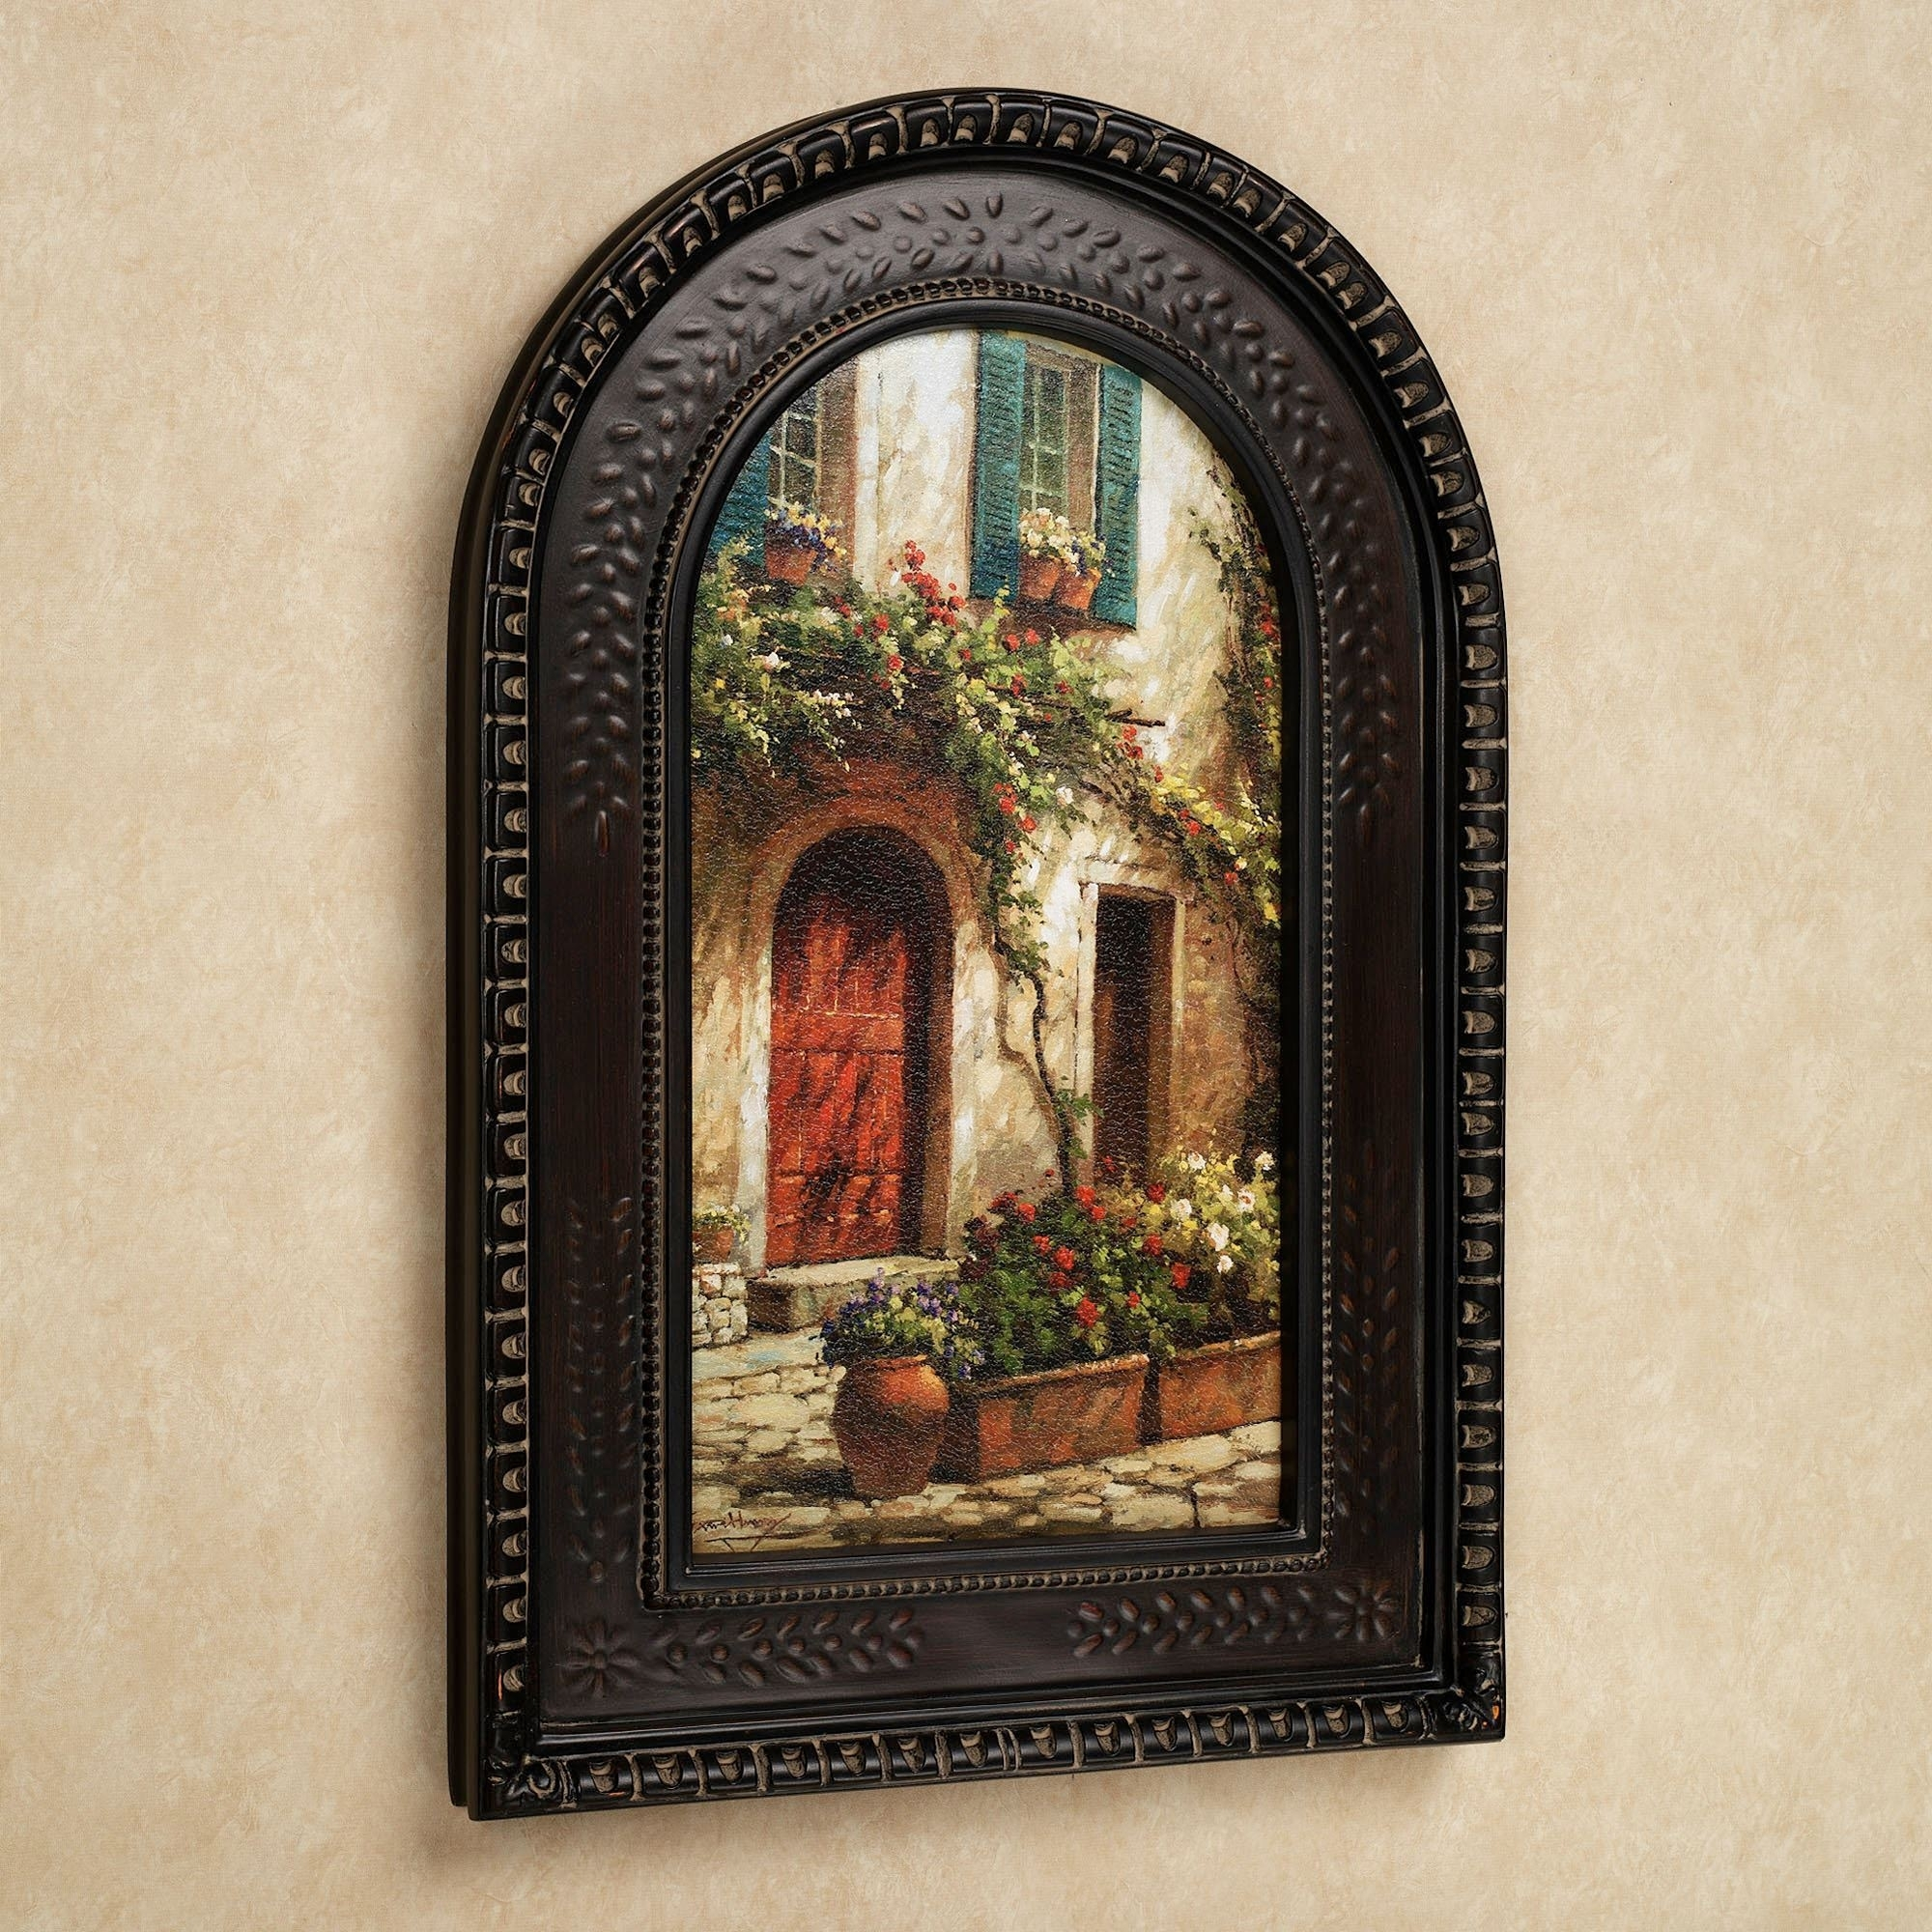 Red Door Italian Scene Arched Framed Wall Art, Tuscan Wall Art In Most Up To Date Tuscan Wall Art (View 17 of 20)